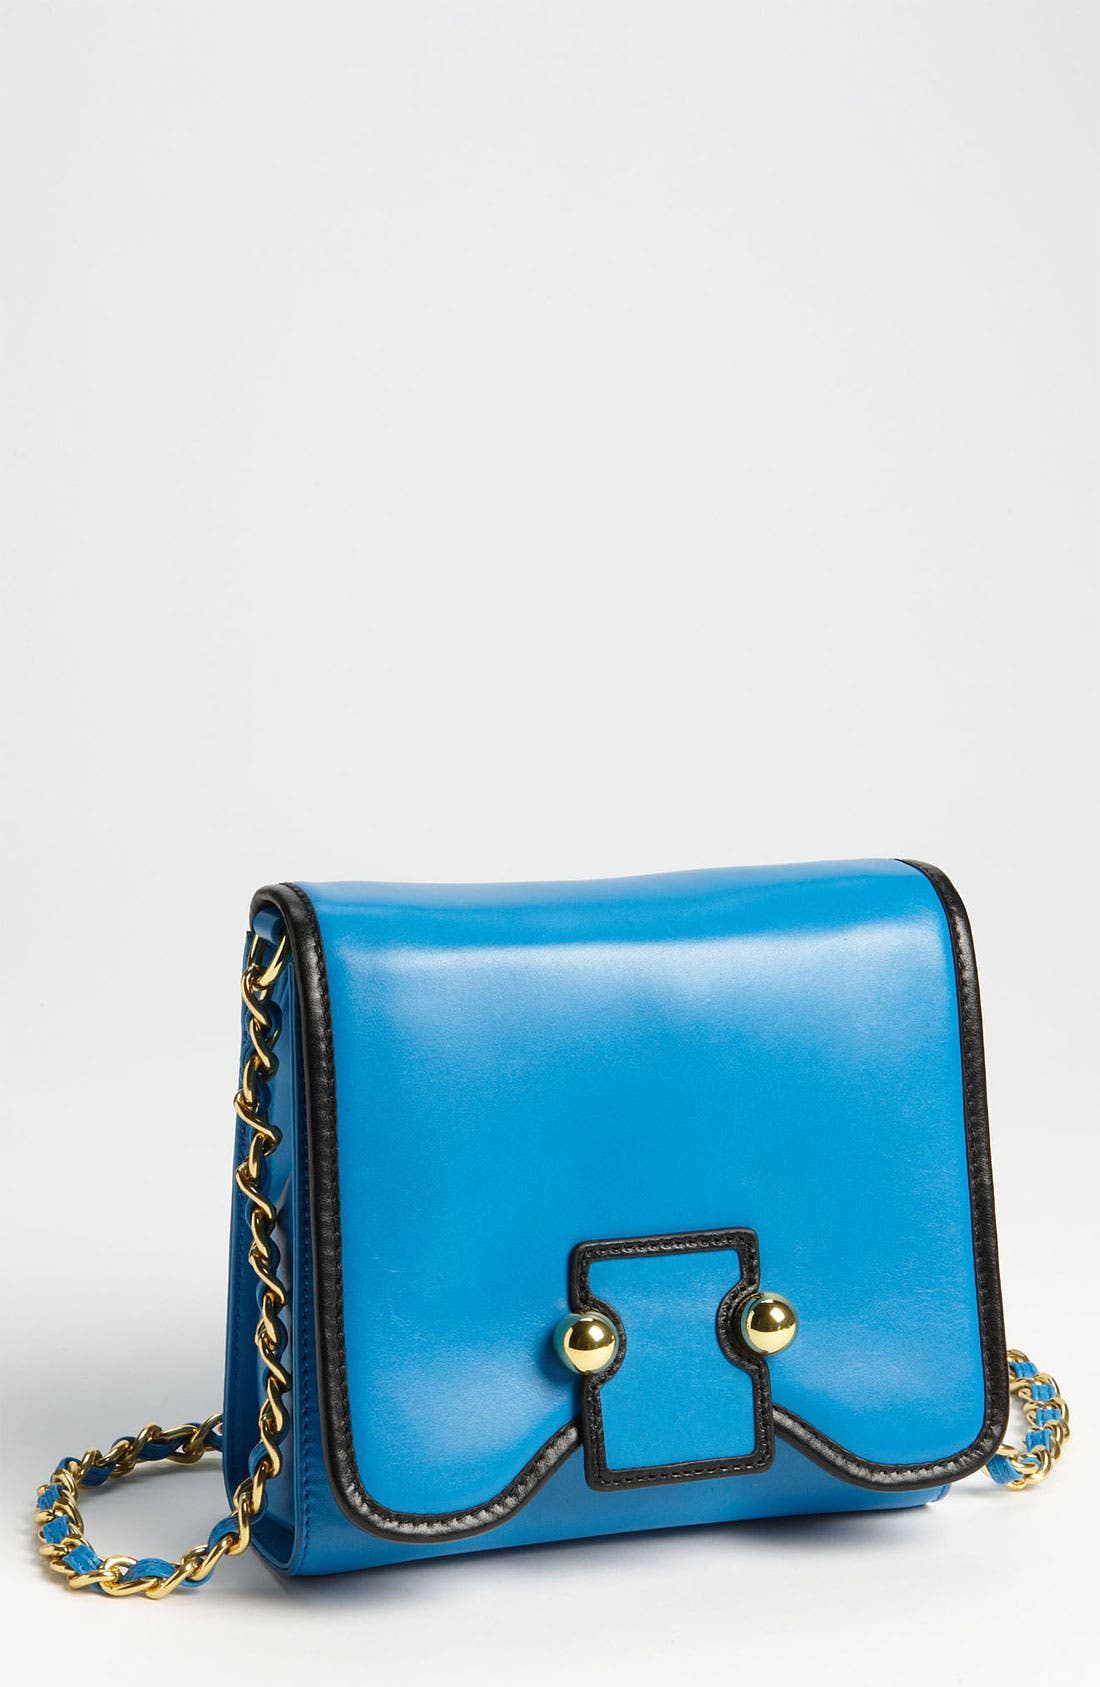 Main Image - Botkier 'Lucy' Crossbody Bag